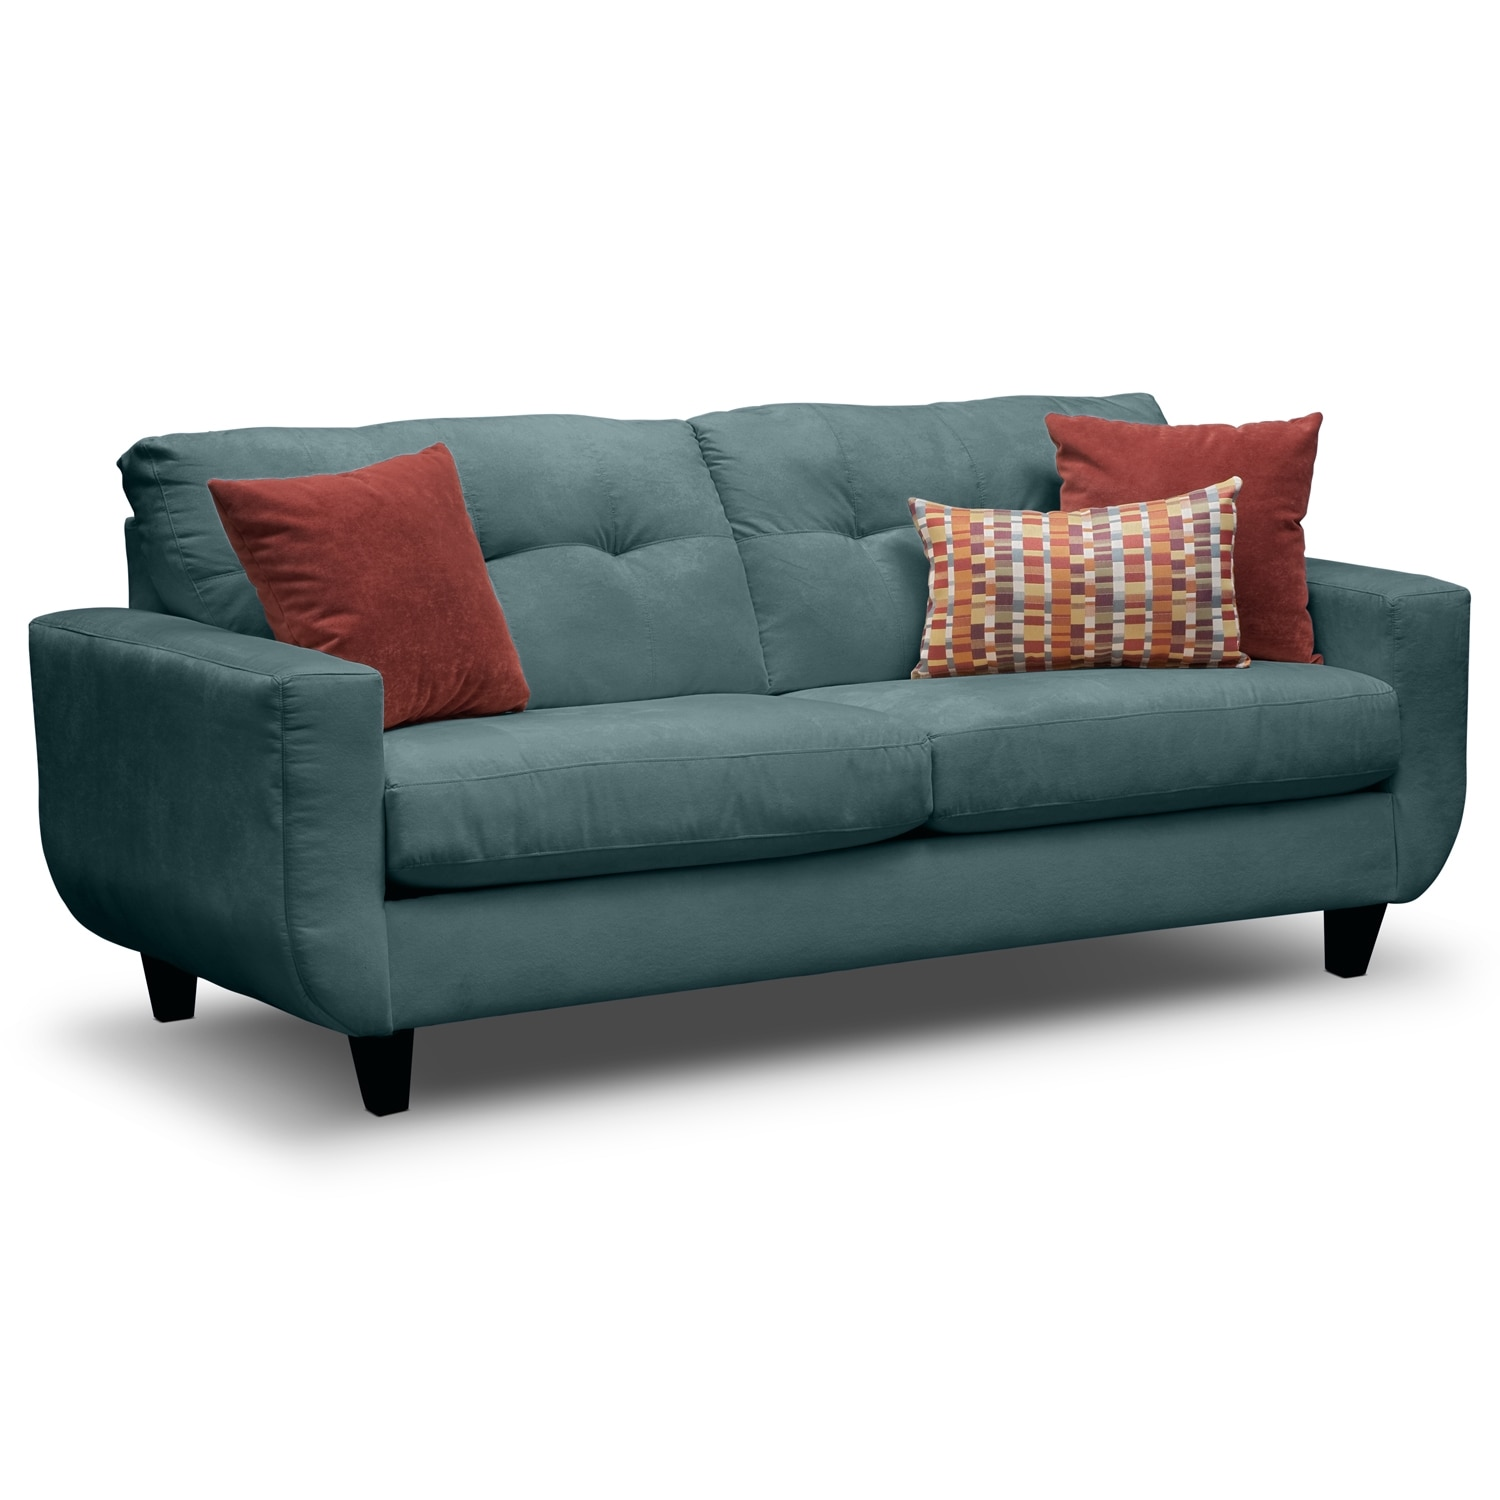 Sofas And Couches On Sale: West Village Sofa And Loveseat Set - Blue